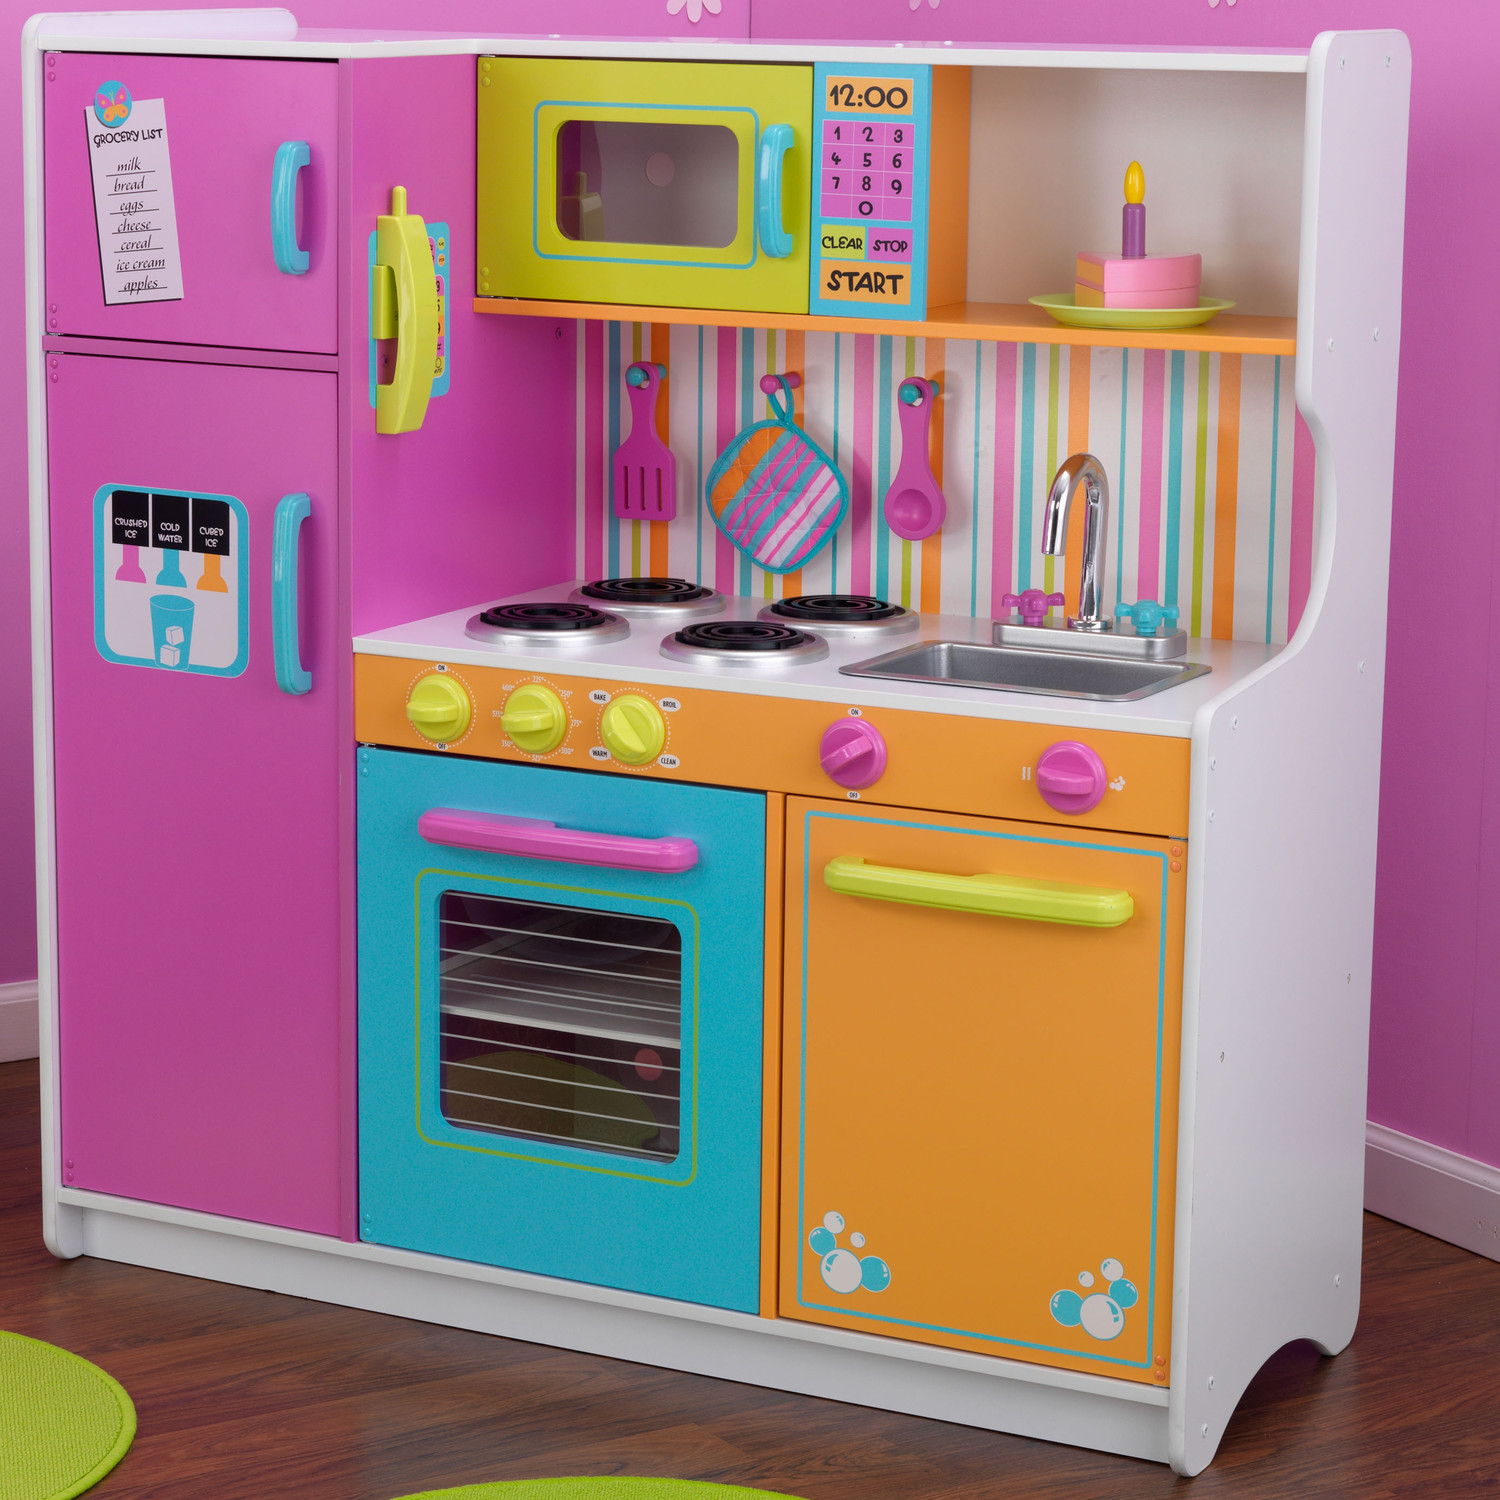 Kitchen Toys For Girls : Indigo canada toy sale save off kidkraft deluxe